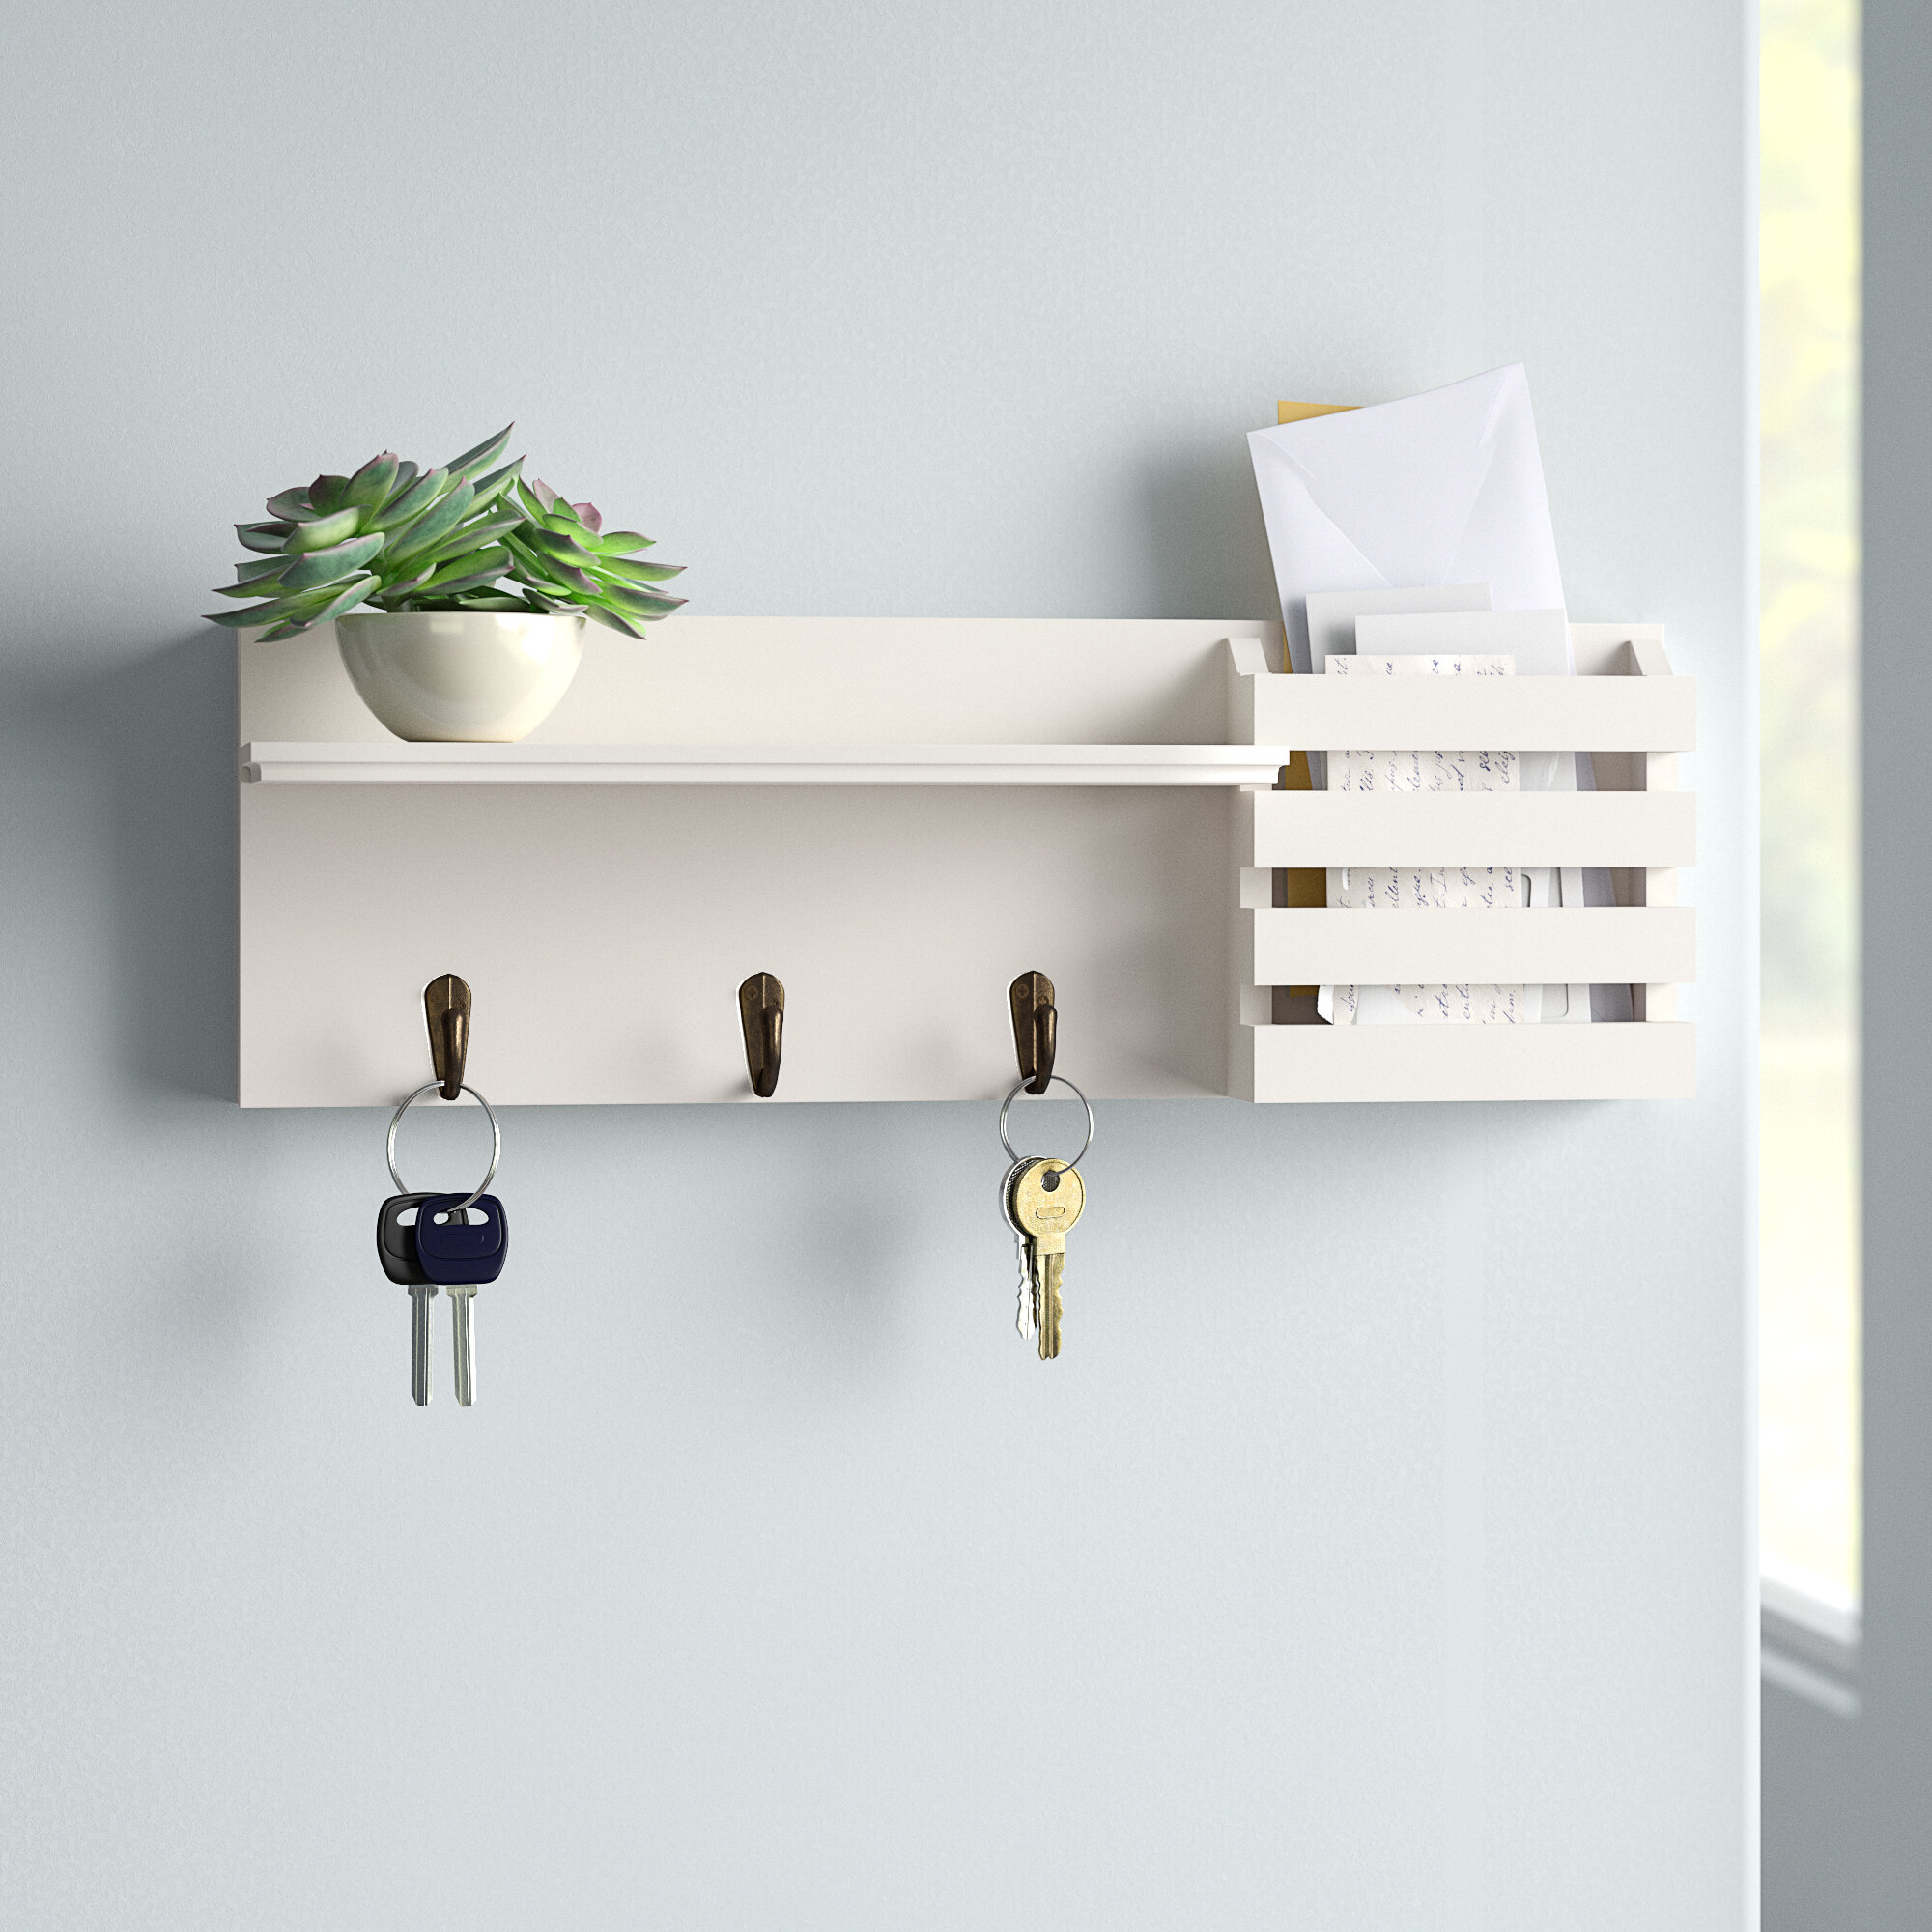 Mail Key Wall Organizers You Ll Love In 2020